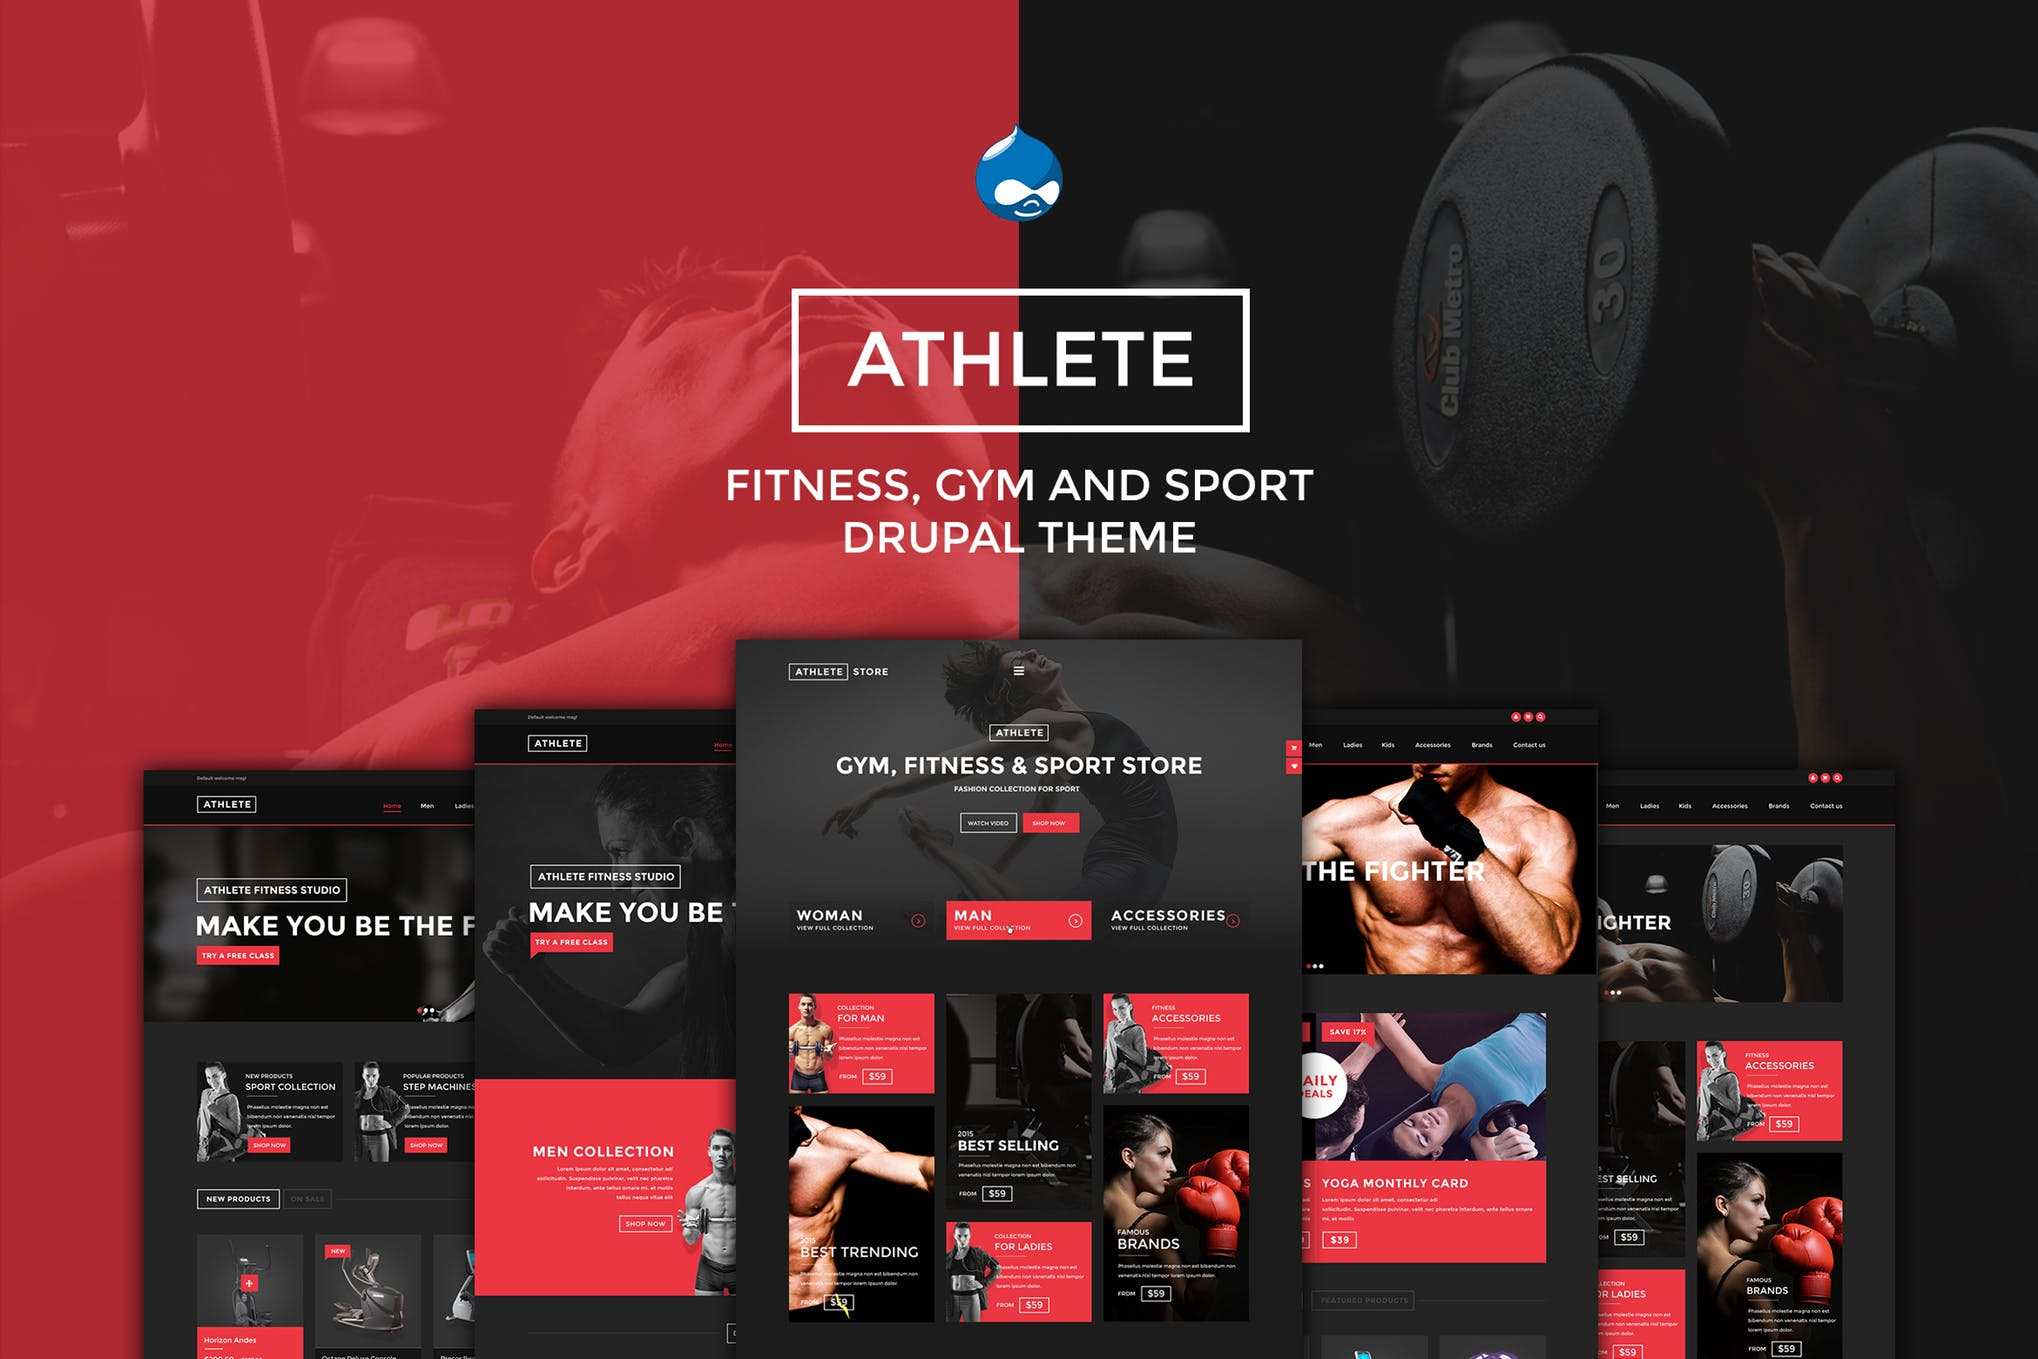 Athlete Gym and Sport Drupal theme